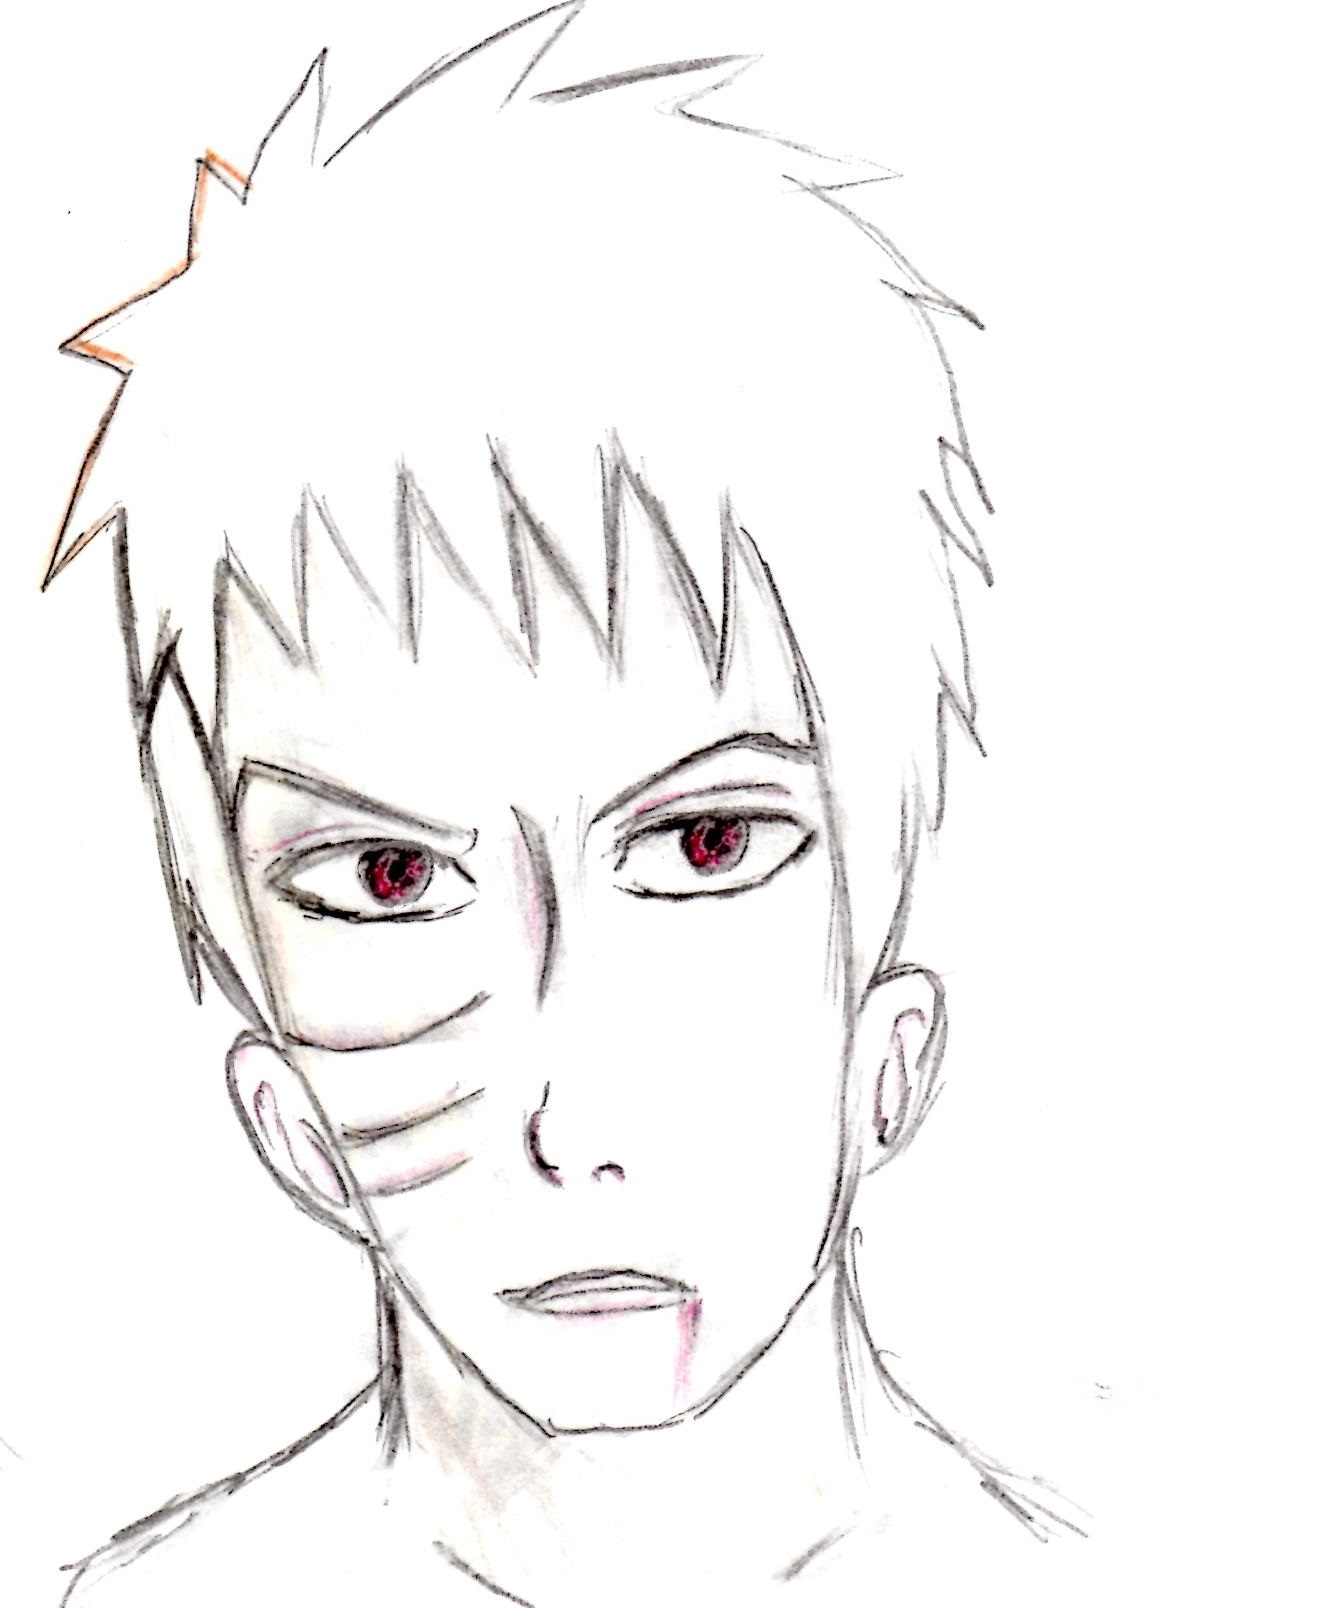 1320x1608 Teamminato Drawings On Paigeeworld. Pictures Of Teamminato